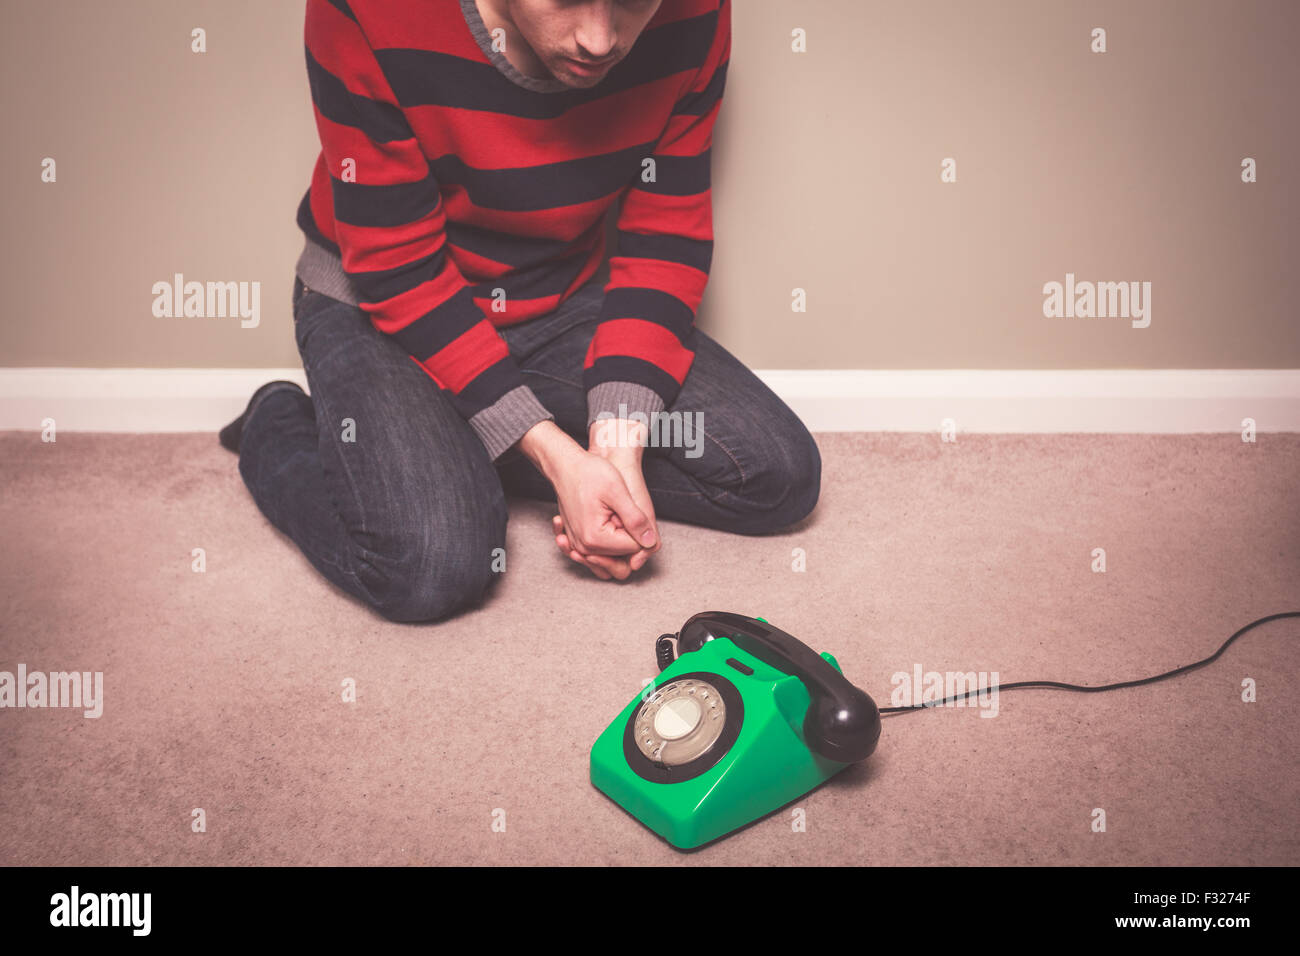 A young man is sitting on the floor and is desperately waiting for a phone call - Stock Image